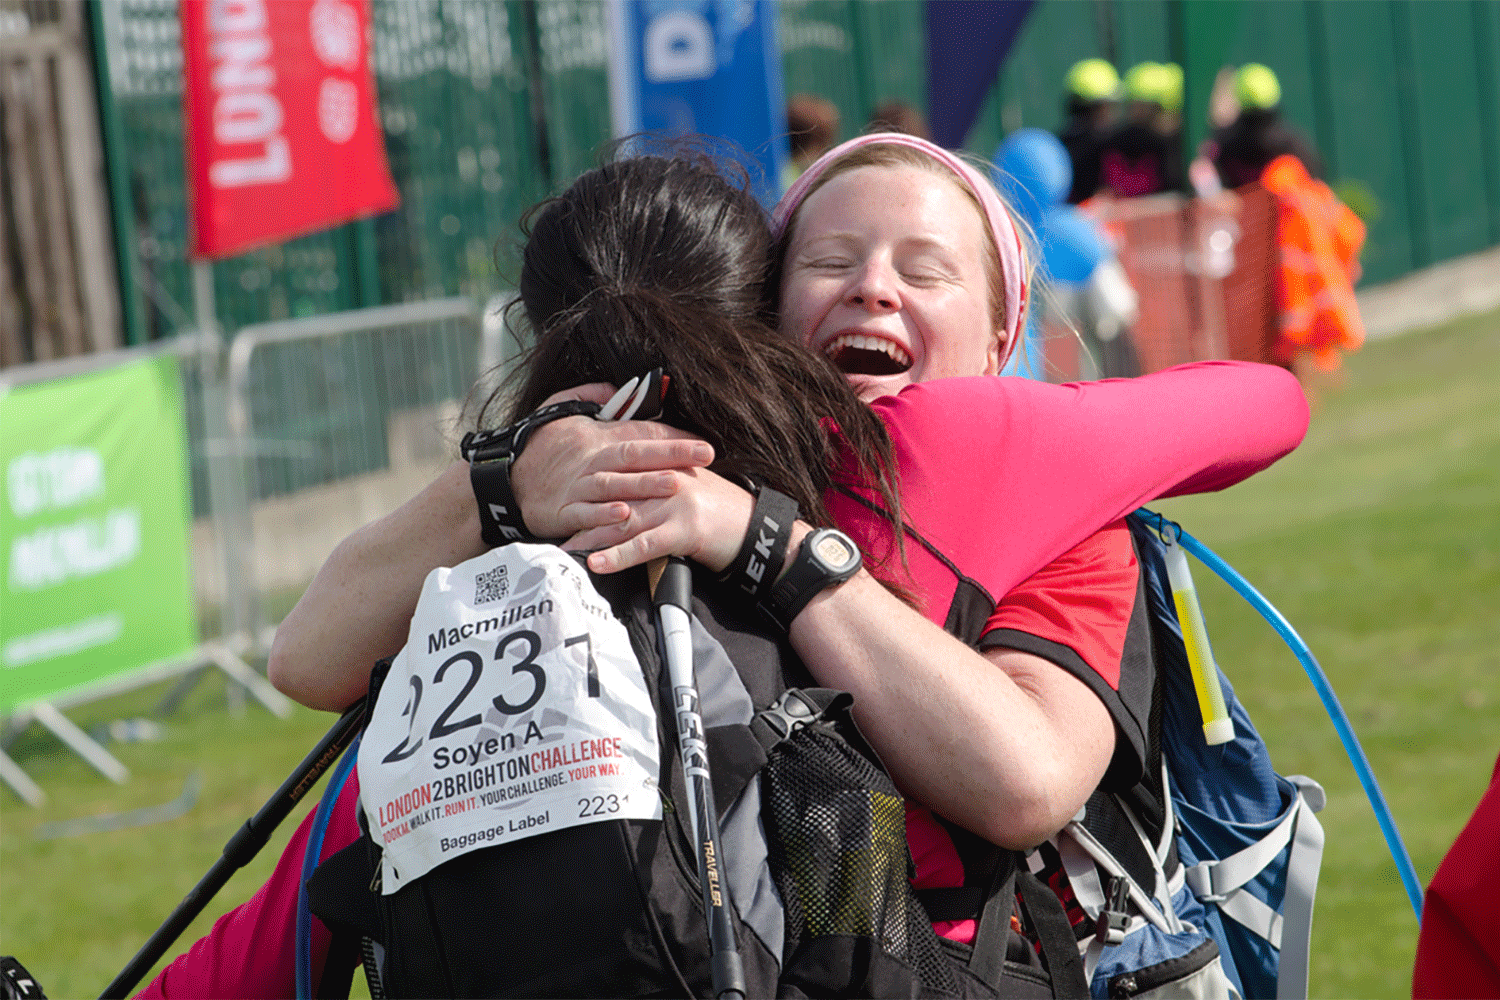 London to Brighton Ultra Challenge for Pumping Marvellous